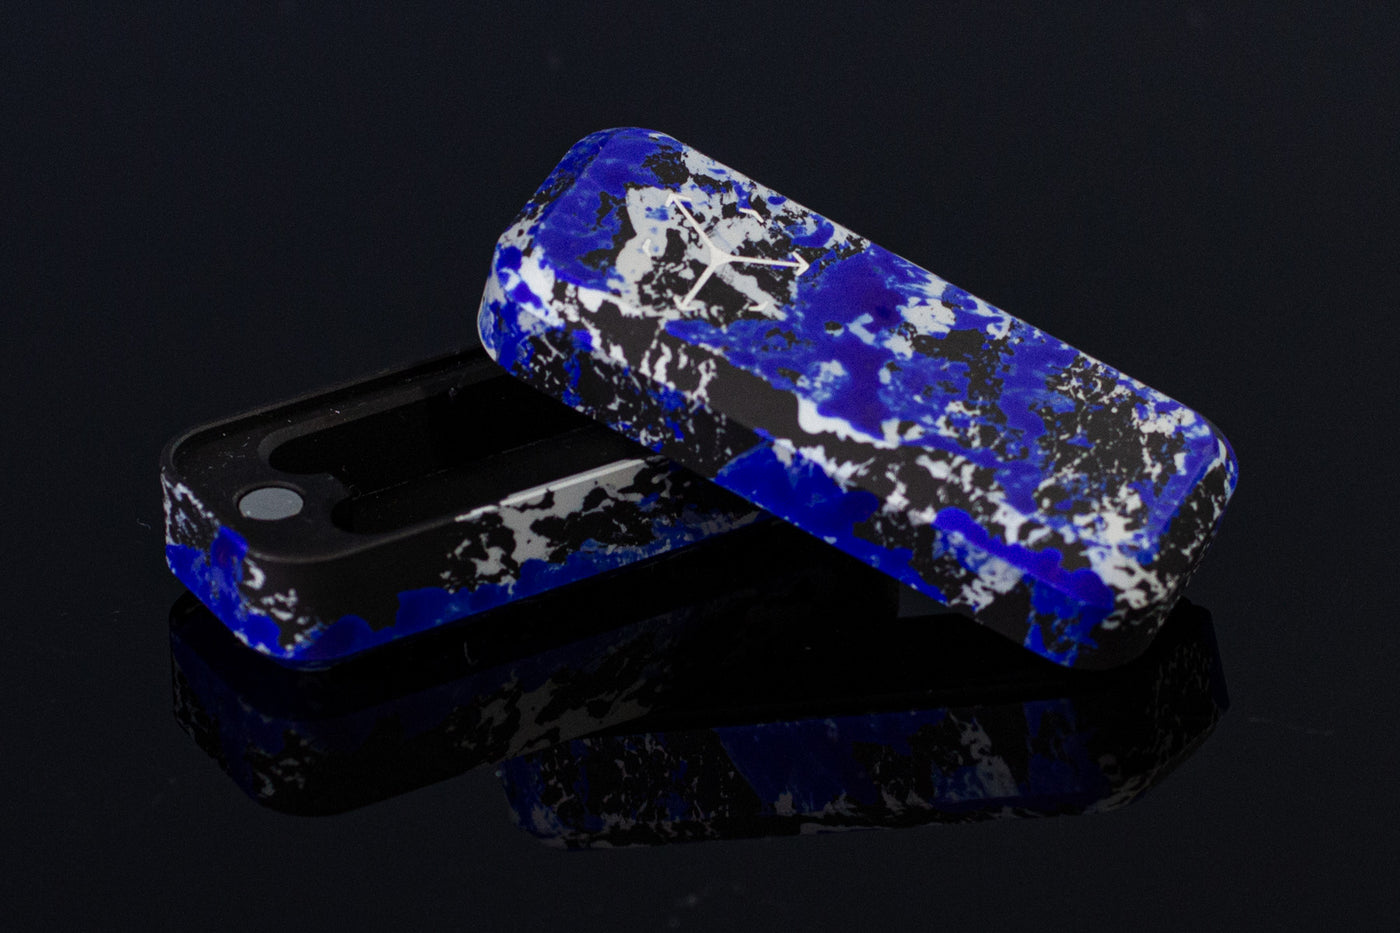 War Zone Limited Edition Case - Ice Camo - Select Your Case Size - Dice Sold Separately - GRAVITY DICE